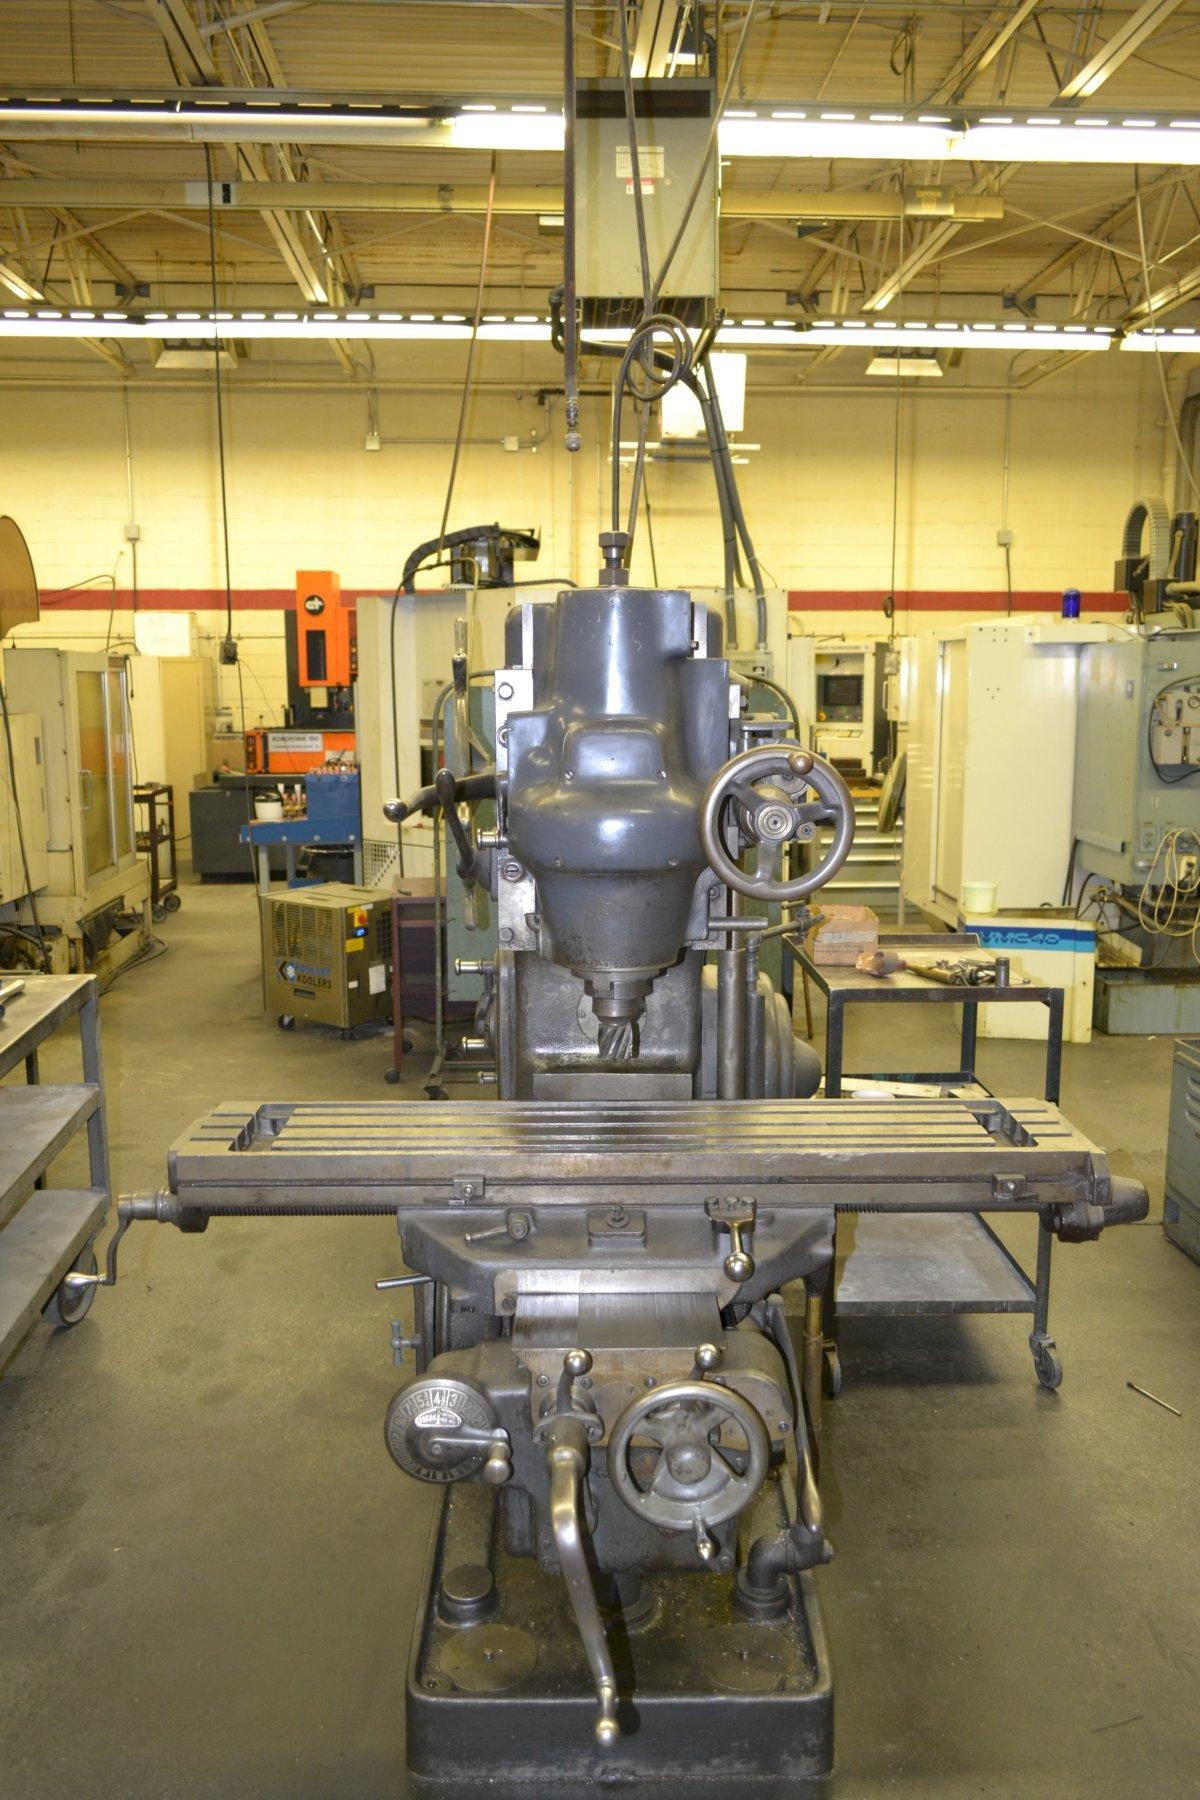 Kearney & Trecker Model 2H Vertical Mill